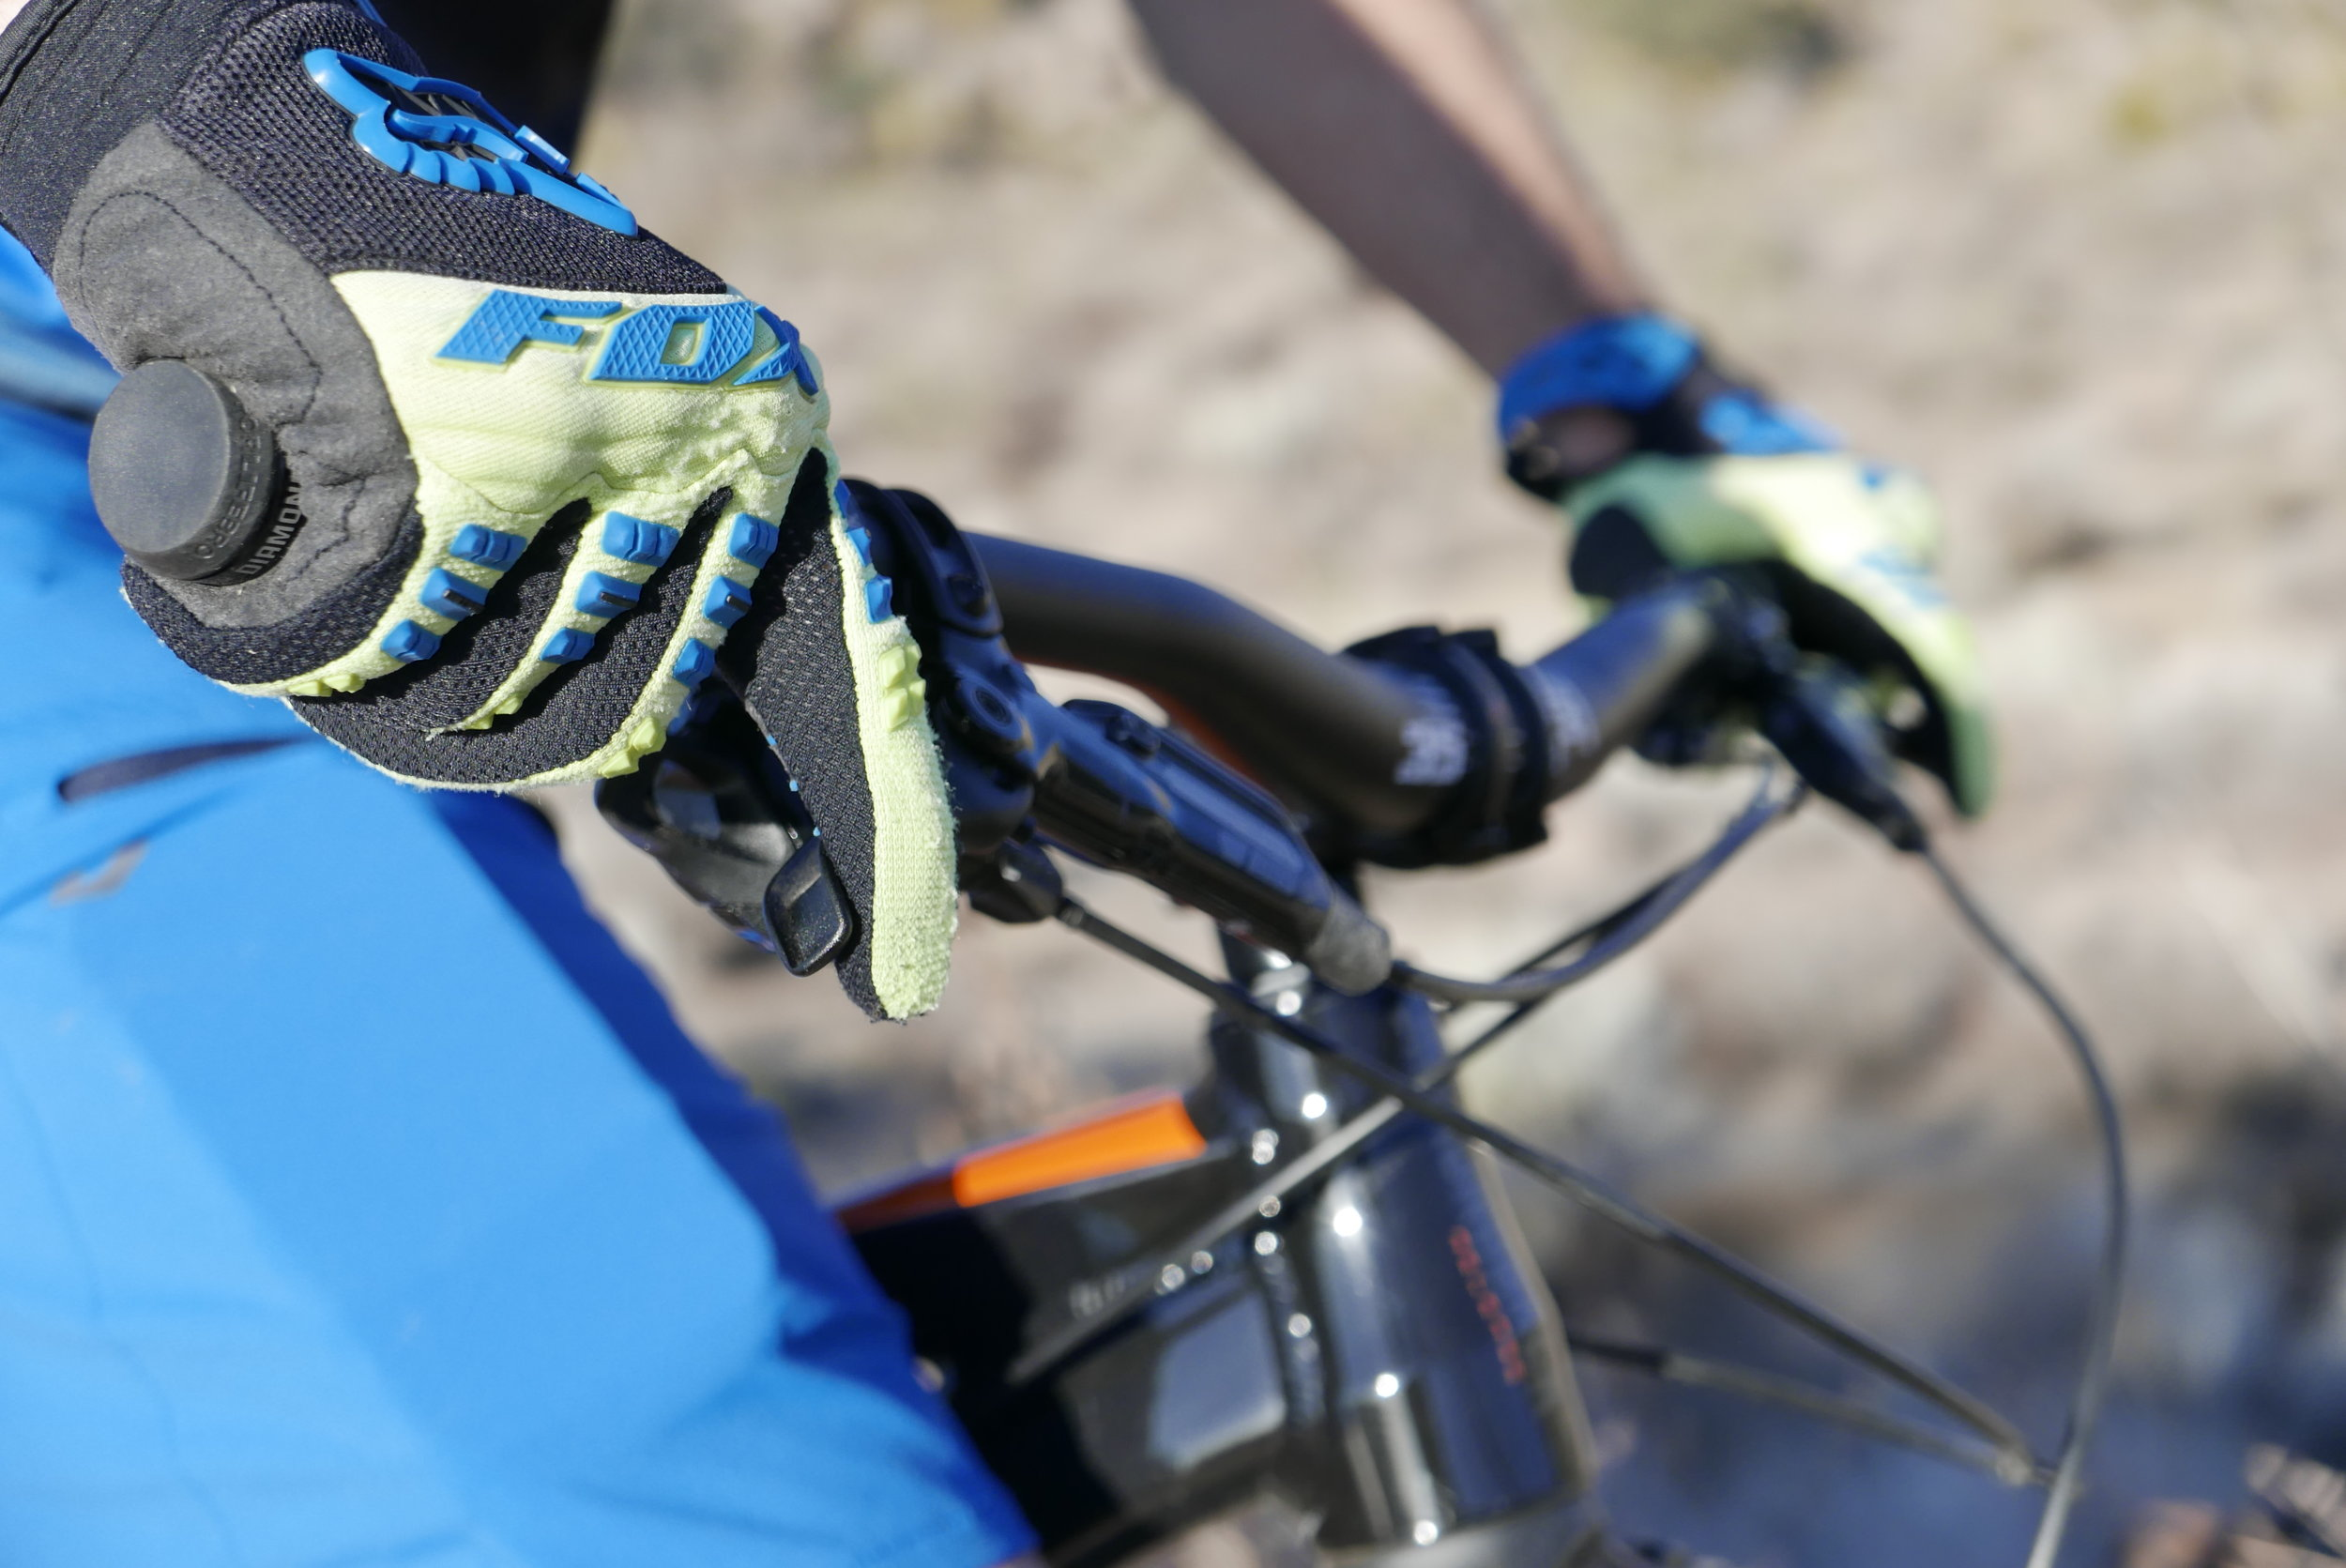 Covering the brake levers with one finger is essential to control. The rider should always use their index finger, and the lever should be between their first and second knuckle. Photo-MST Adventures, Rider-Corey Spoores